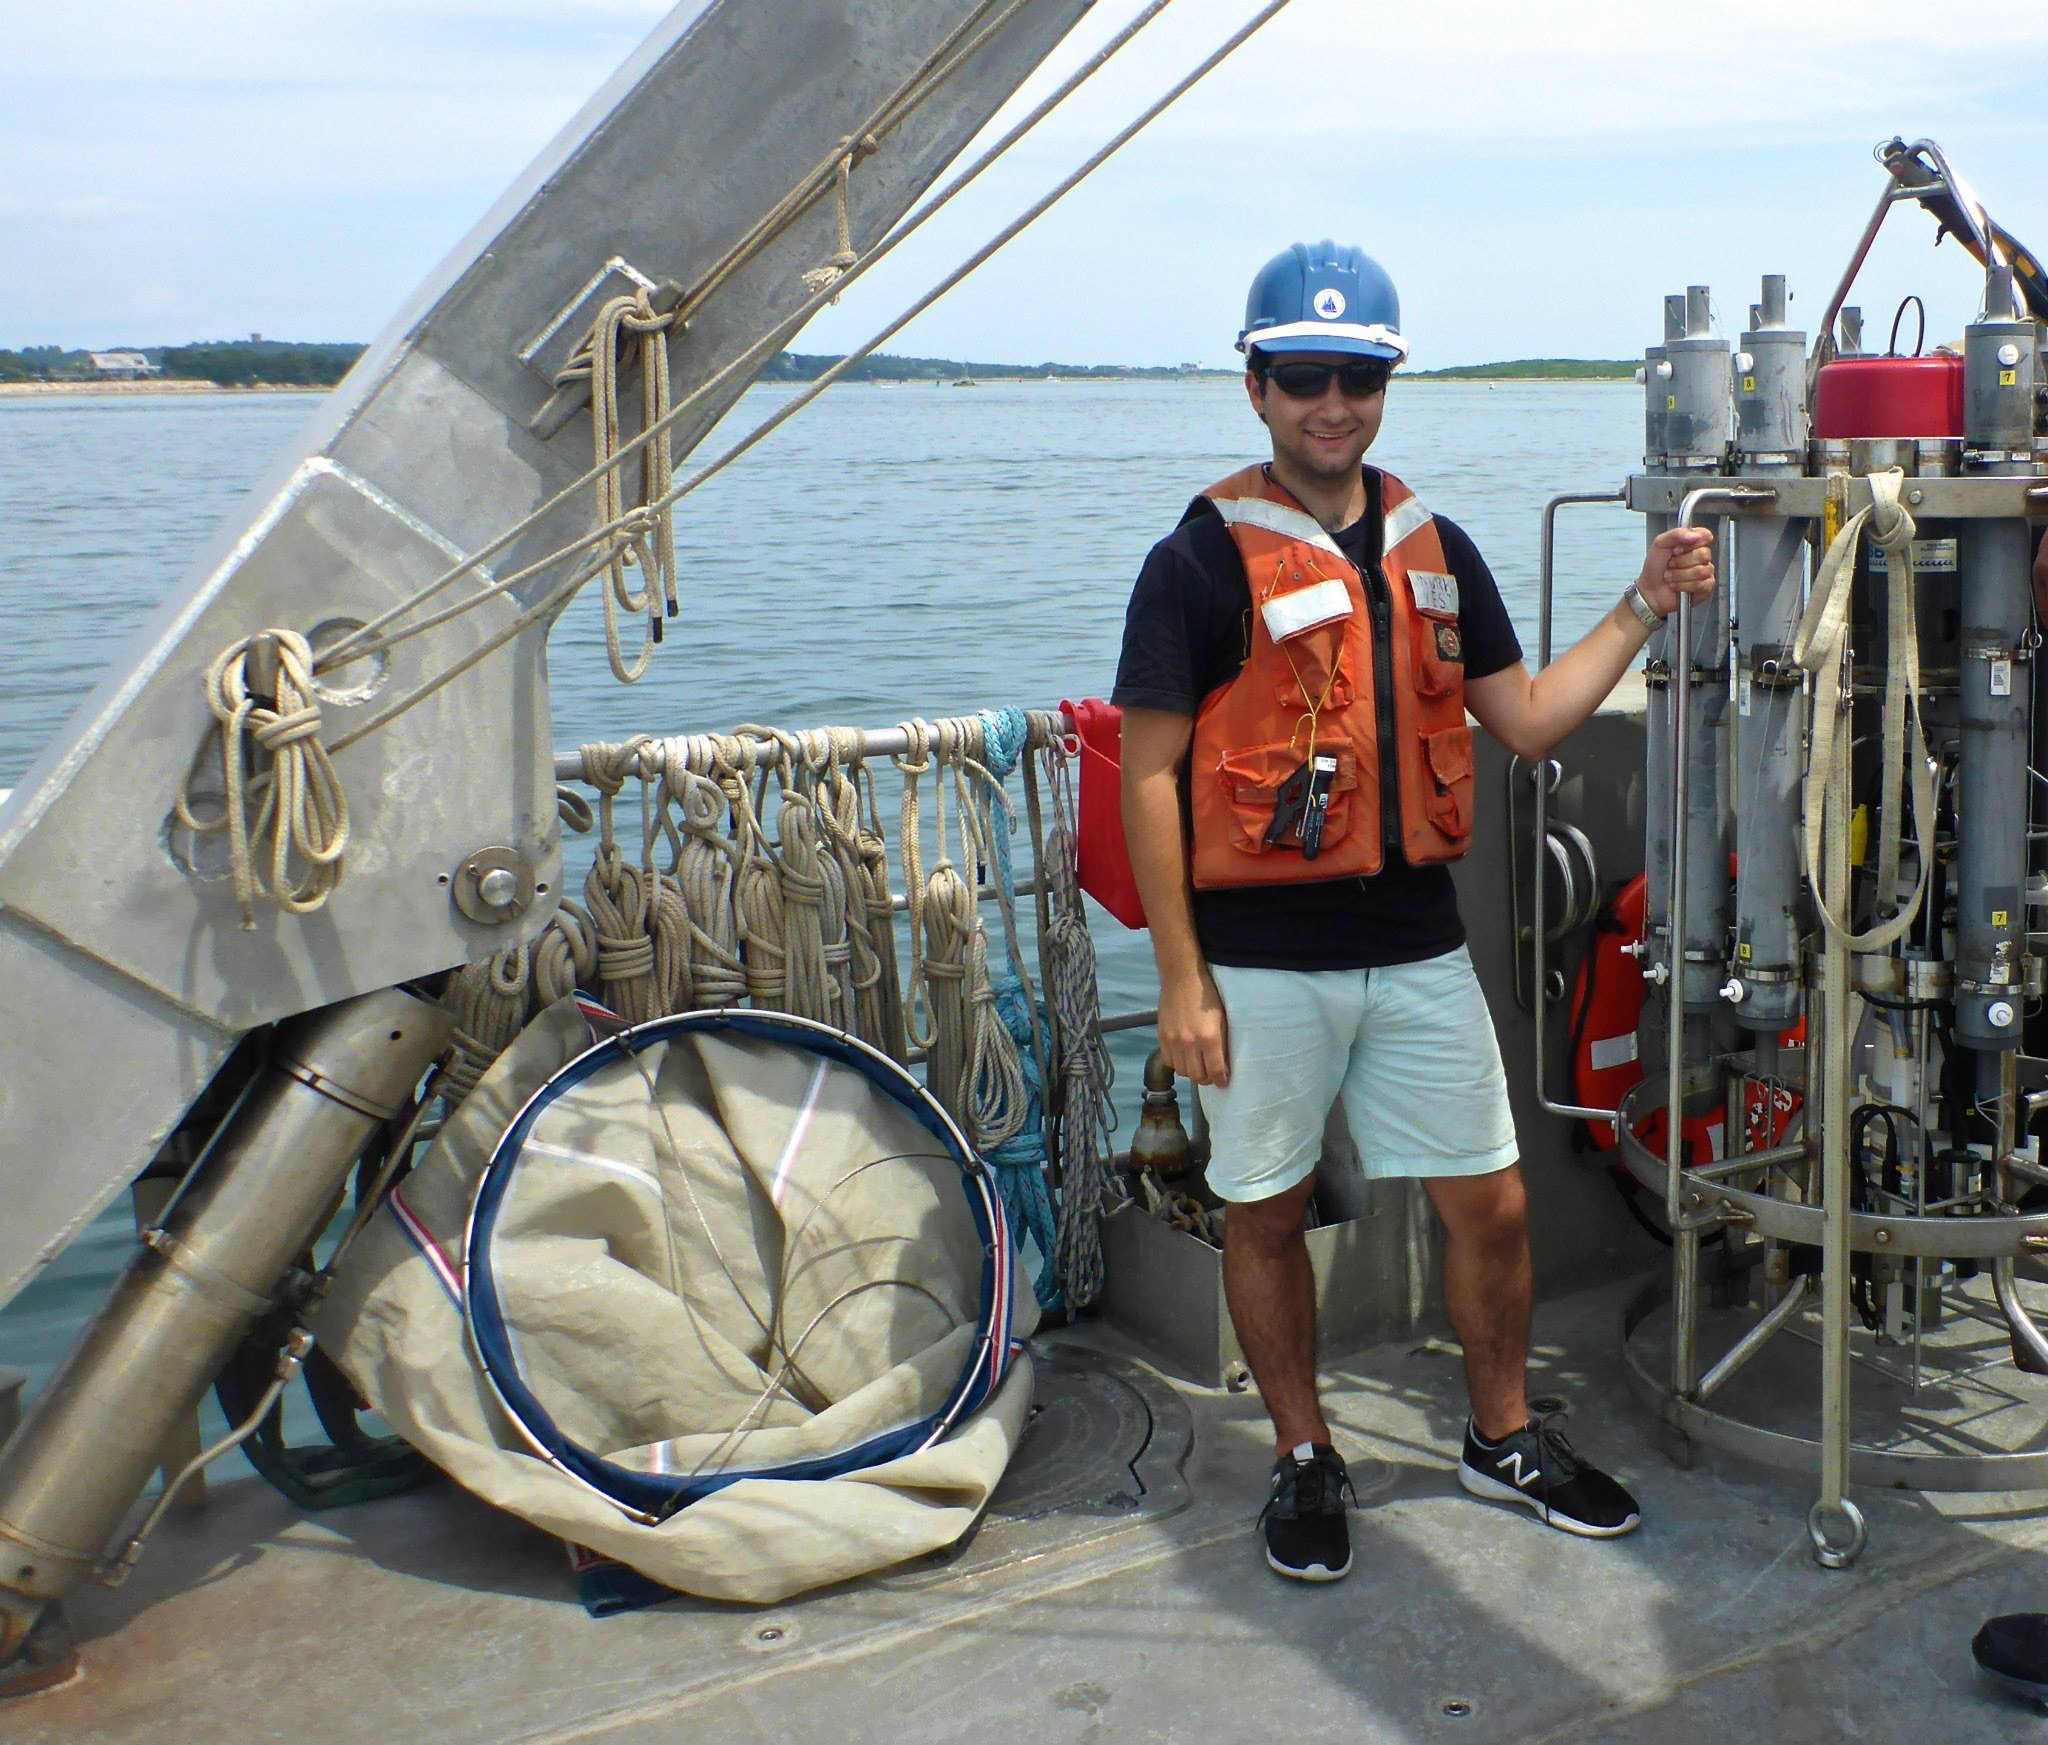 Taken on the R/V Tioga ocean sampling cruise Photo Credit: Ann Dunham